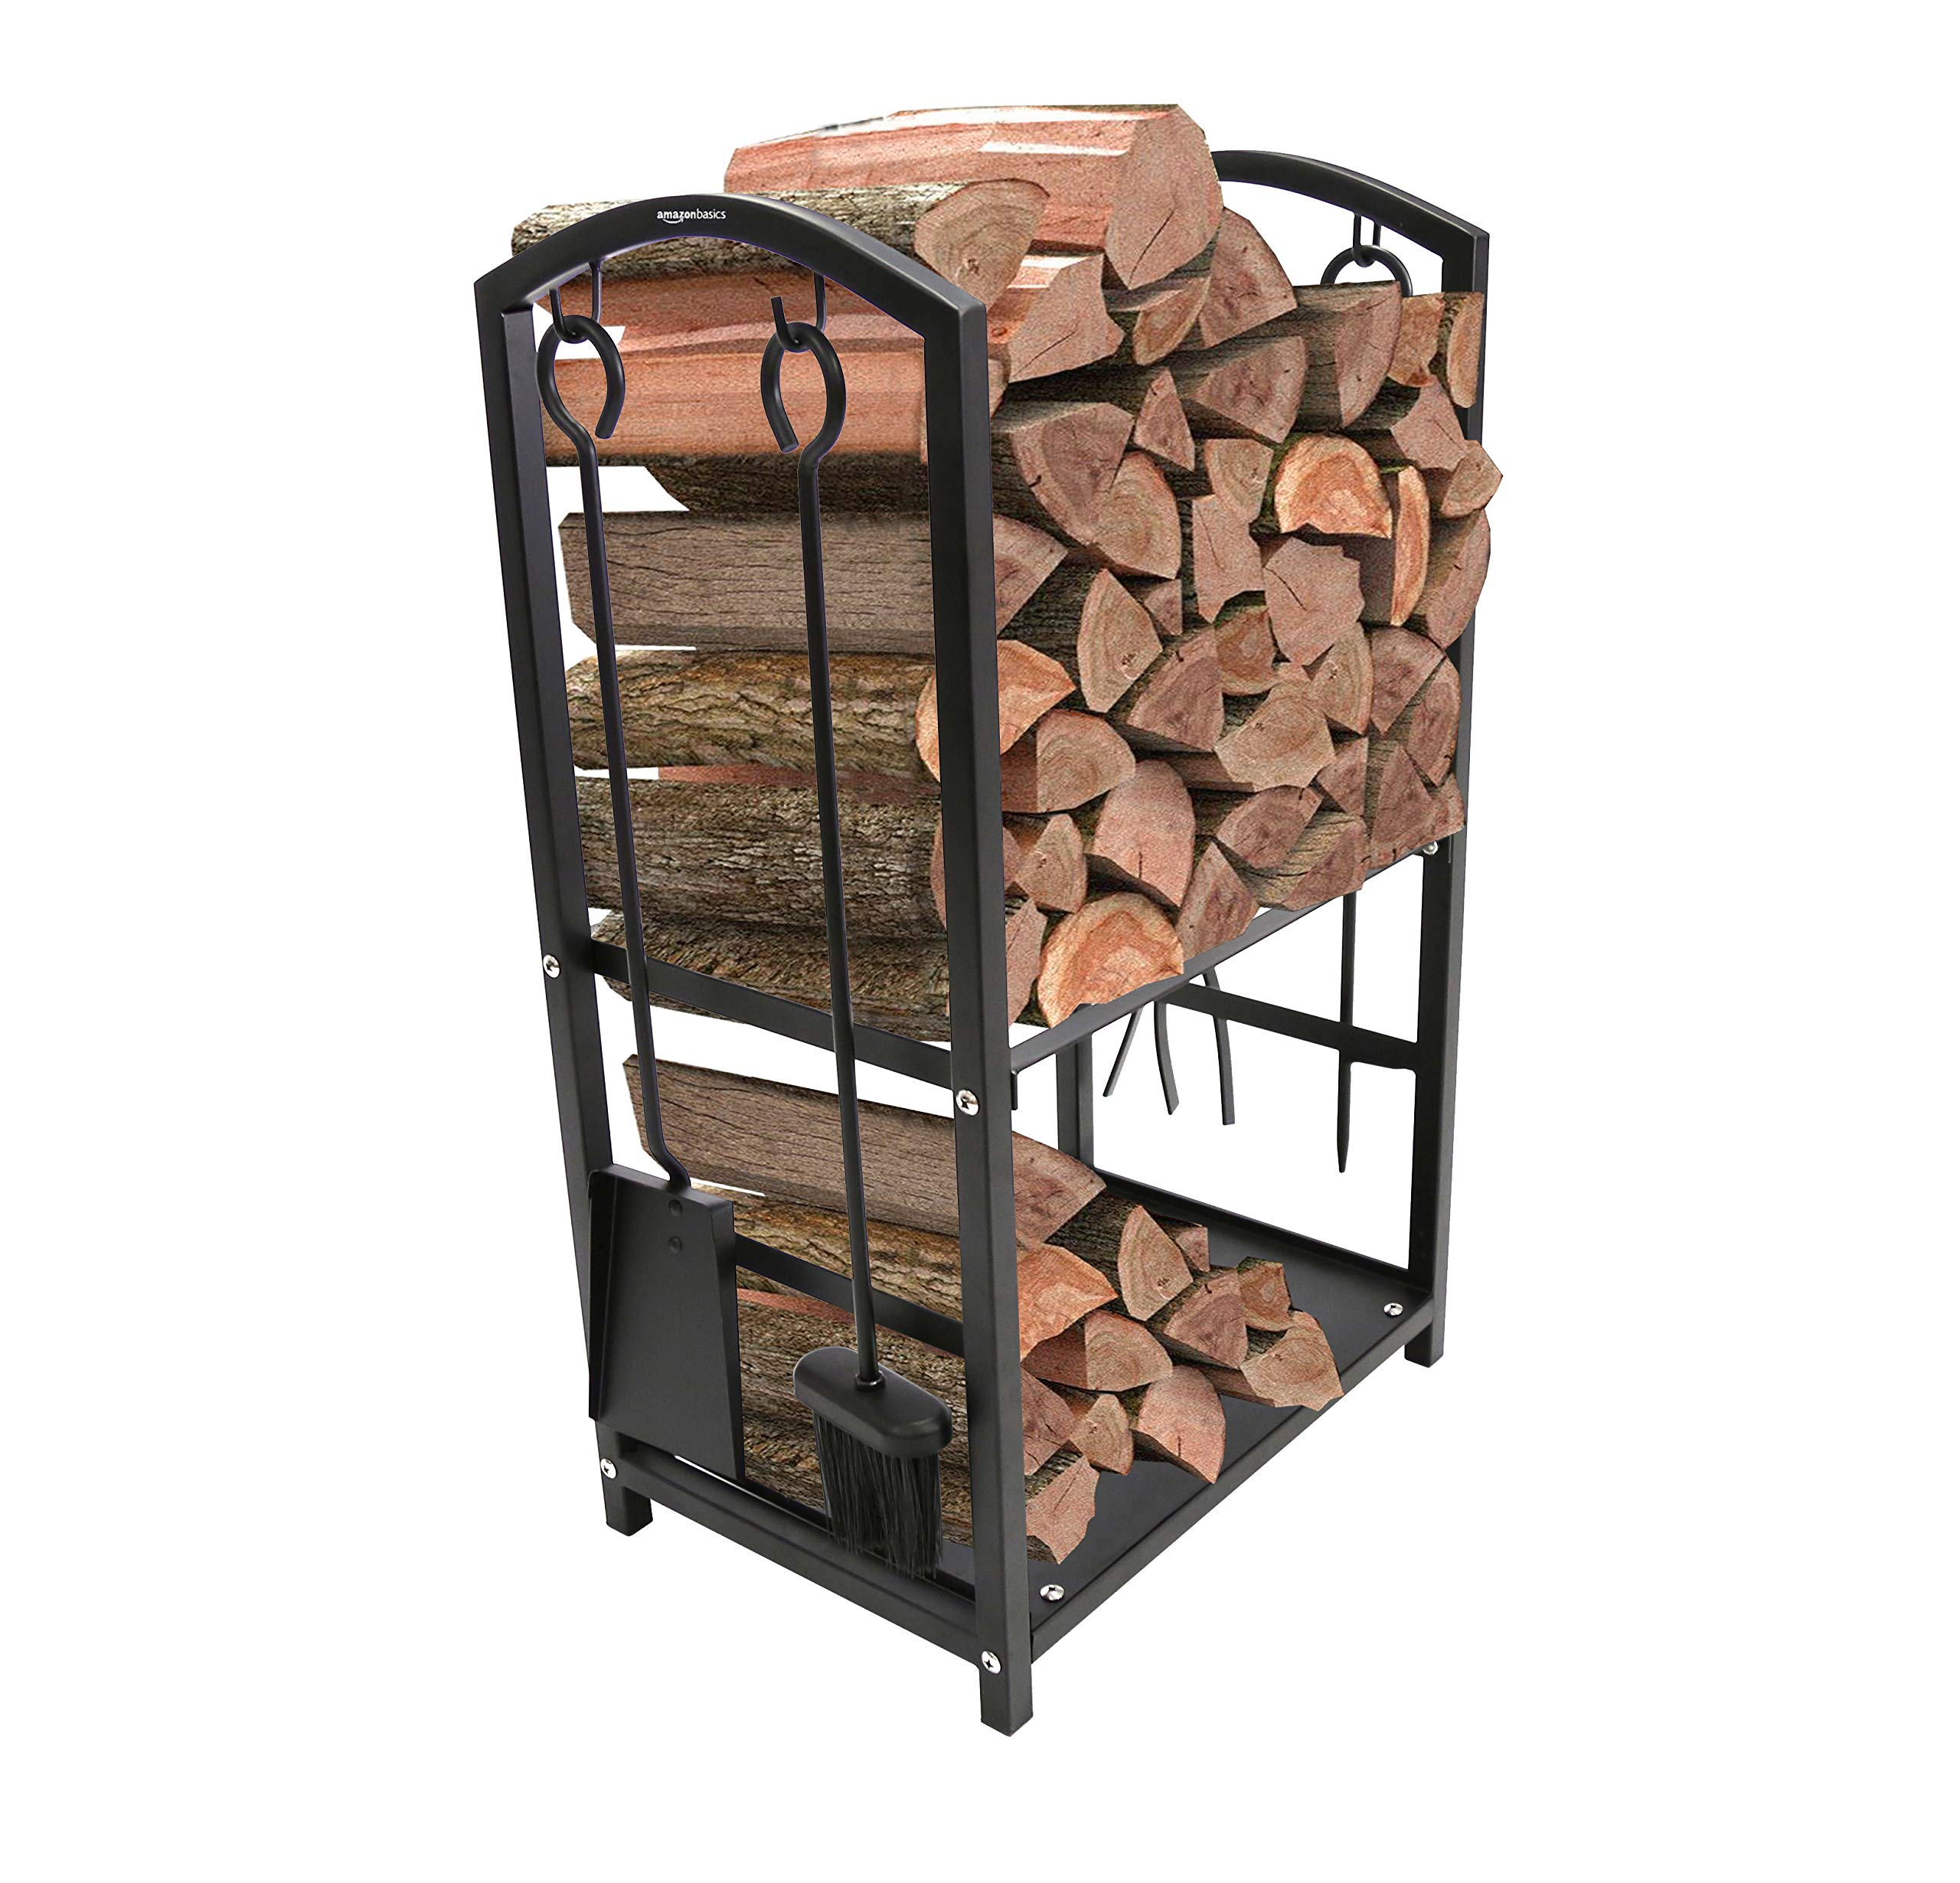 AmazonBasics Outdoor Indoor Log Rack with Fireplace Accessories by AmazonBasics